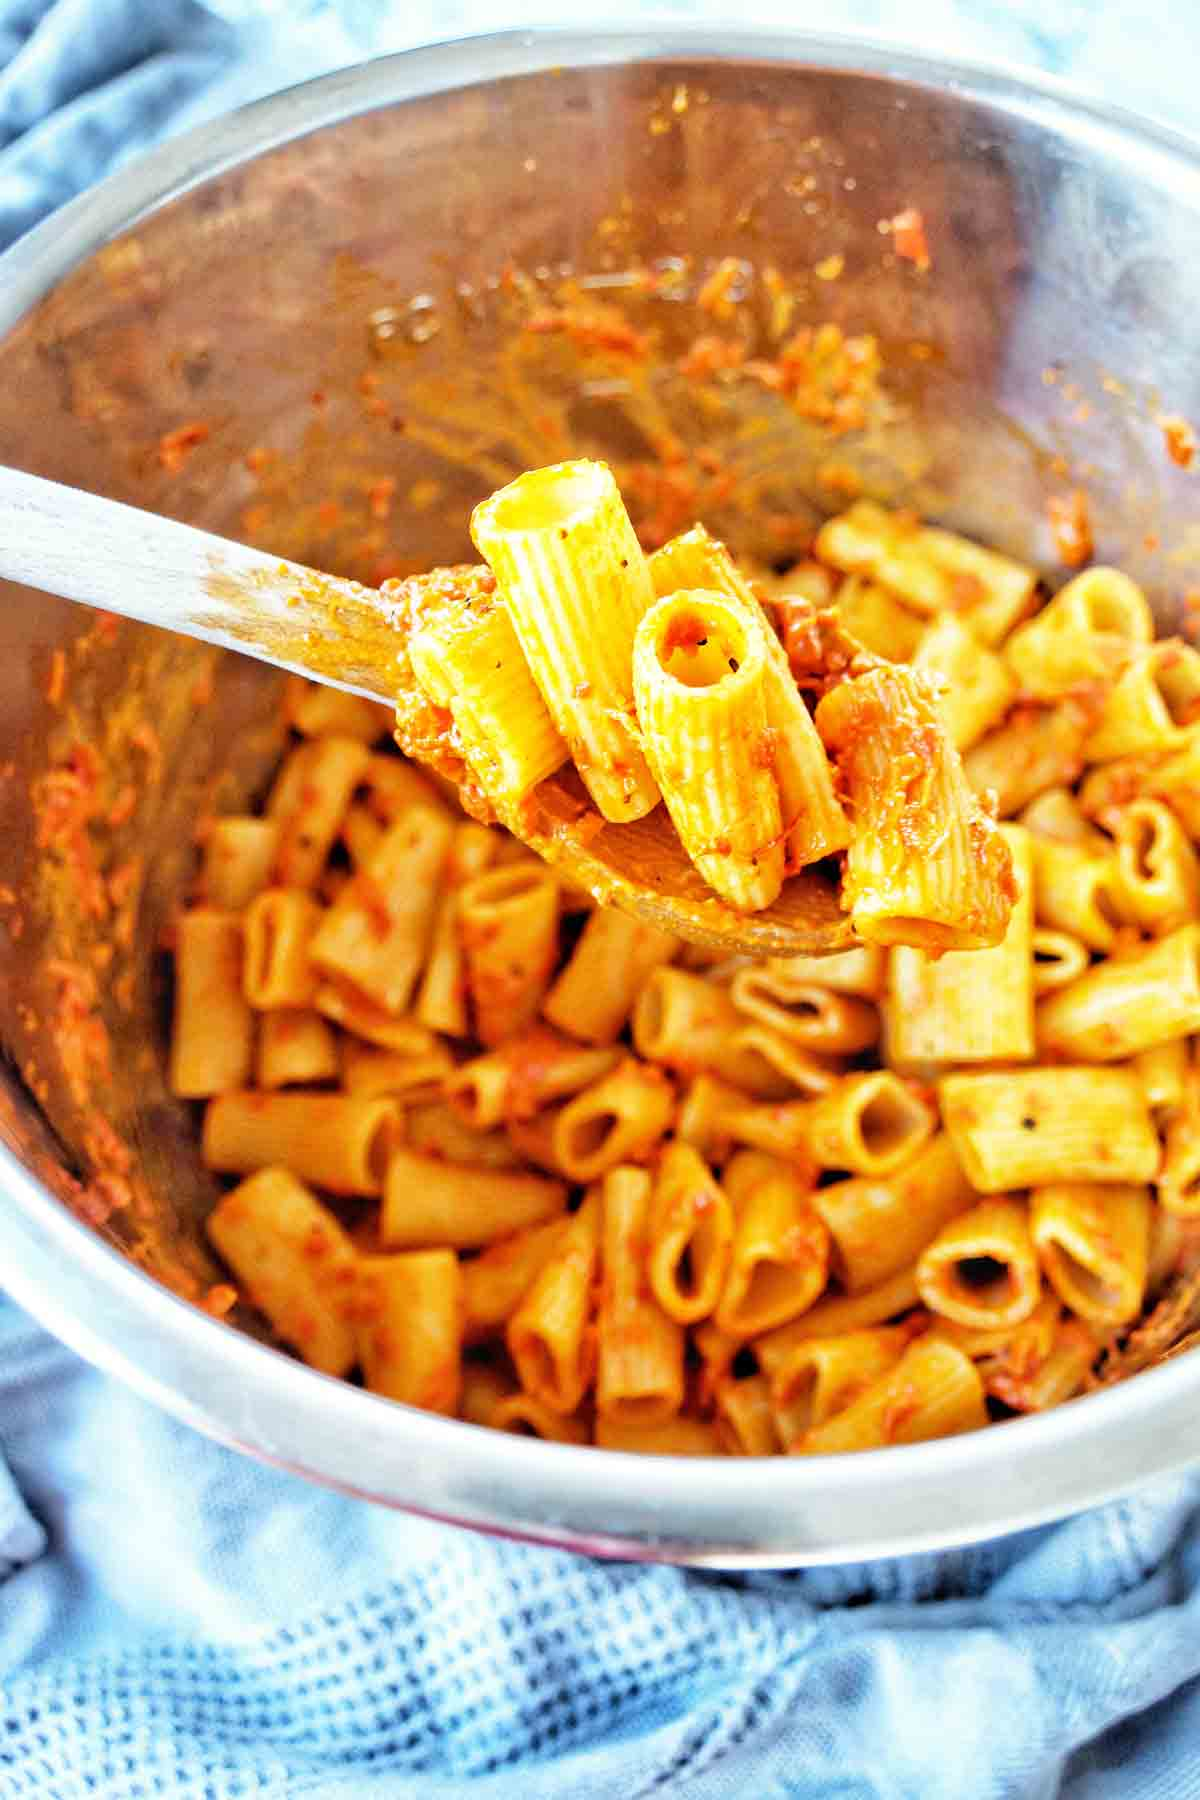 Wooden spoon holding rigatoni over Instant Pot bowl of the same